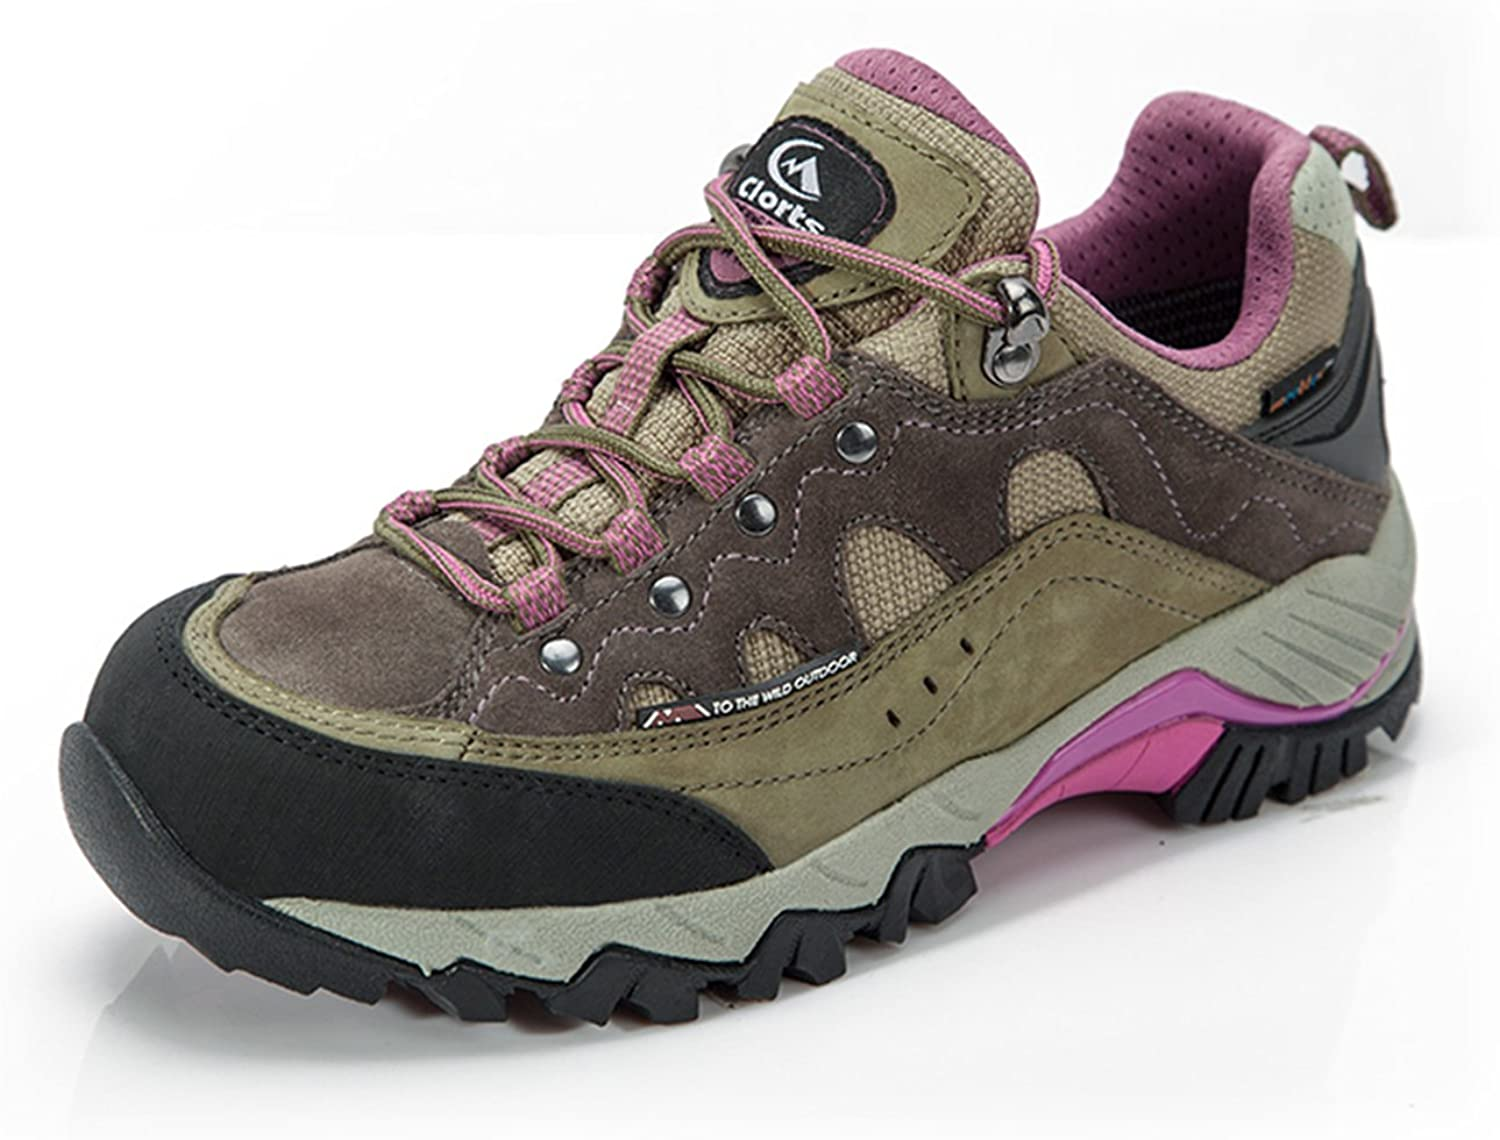 Qianling Collection Women's Outdoor Waterproof Suede Hiking shoes